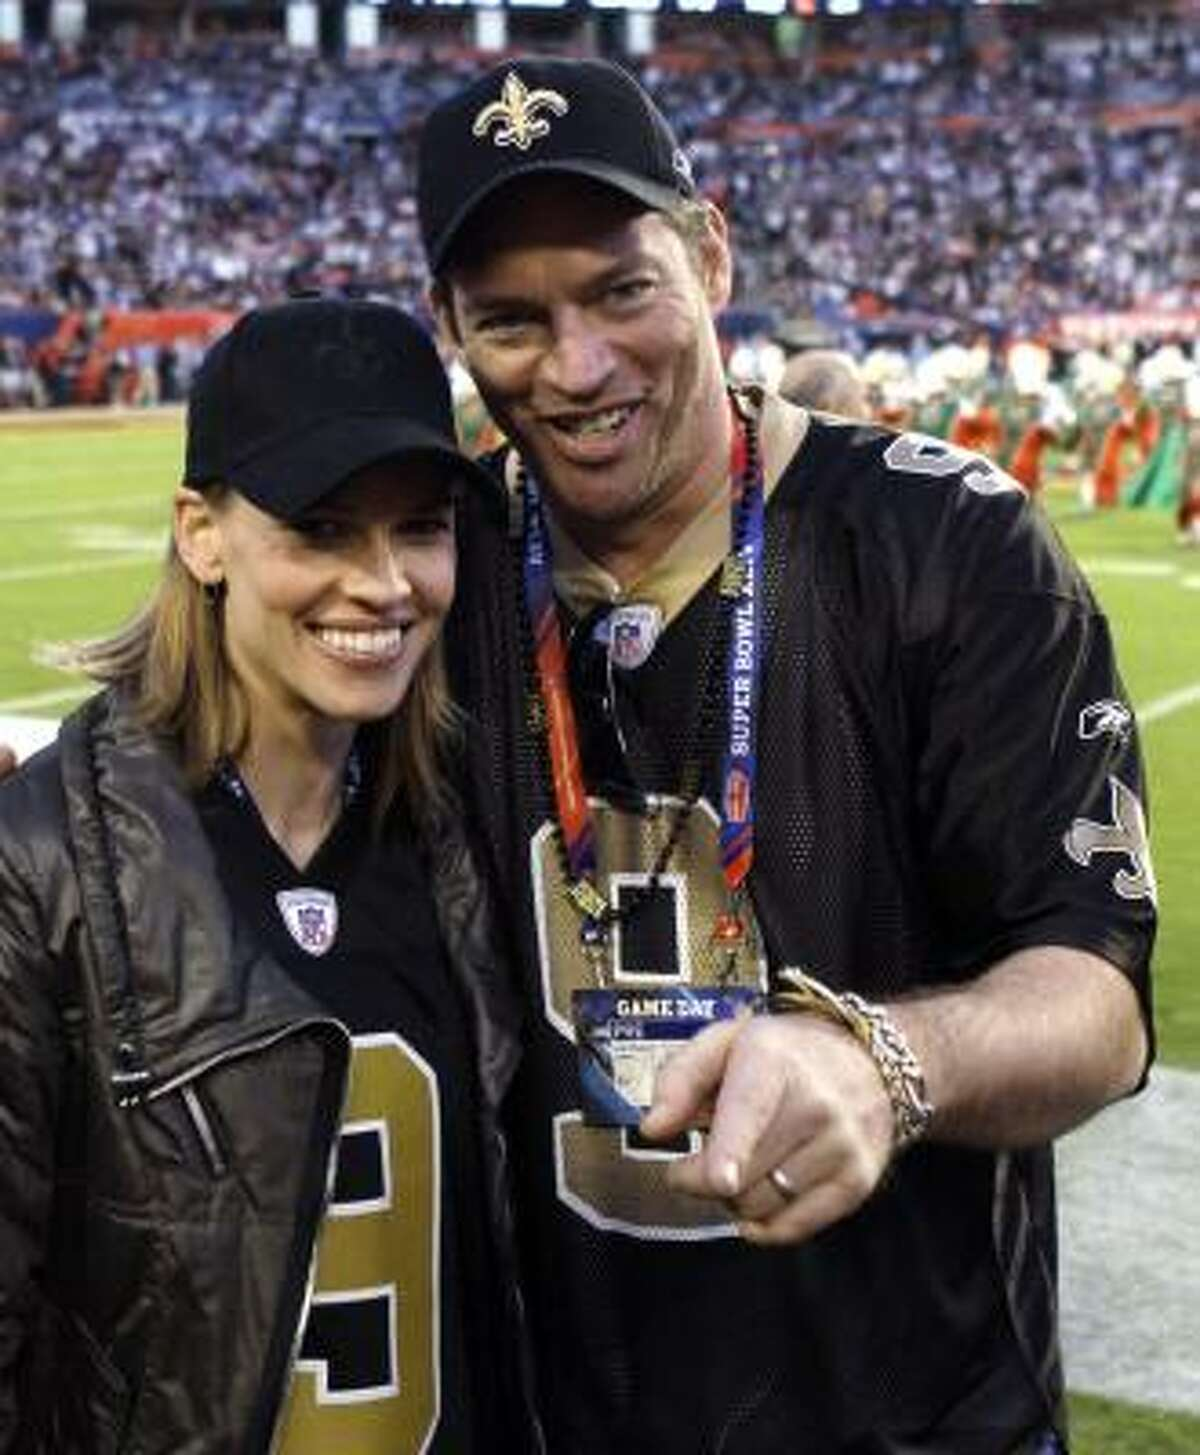 Actress Hilary Swank and singer Harry Connick Jr., are seen on the field before Super Bowl XLIV .